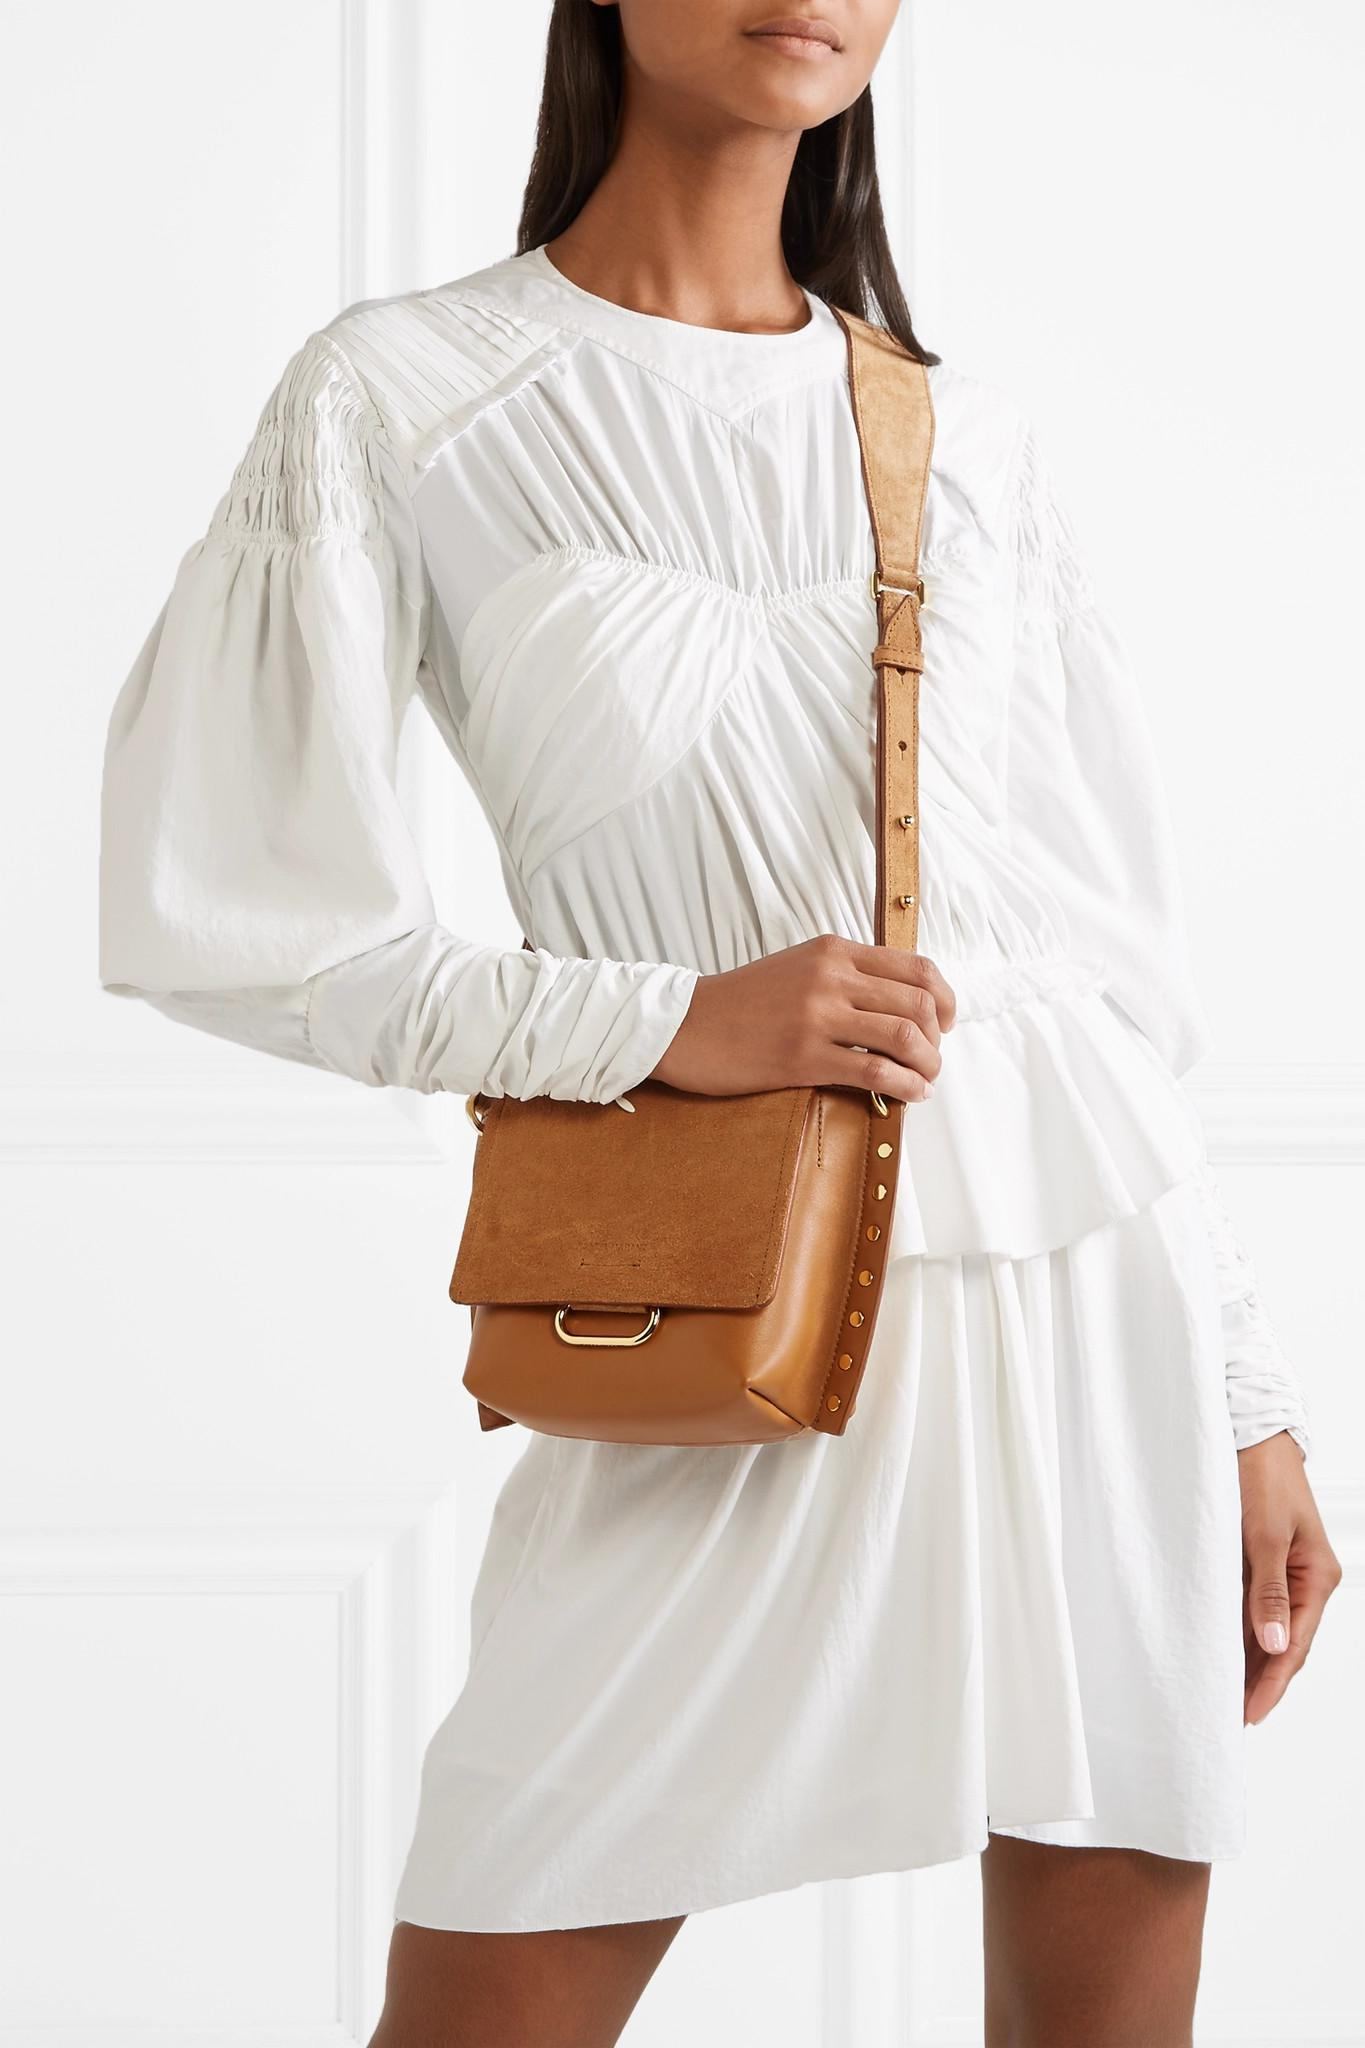 c594a4bc33 Isabel Marant - Brown Kleny Embellished Leather And Suede Shoulder Bag -  Lyst. View fullscreen